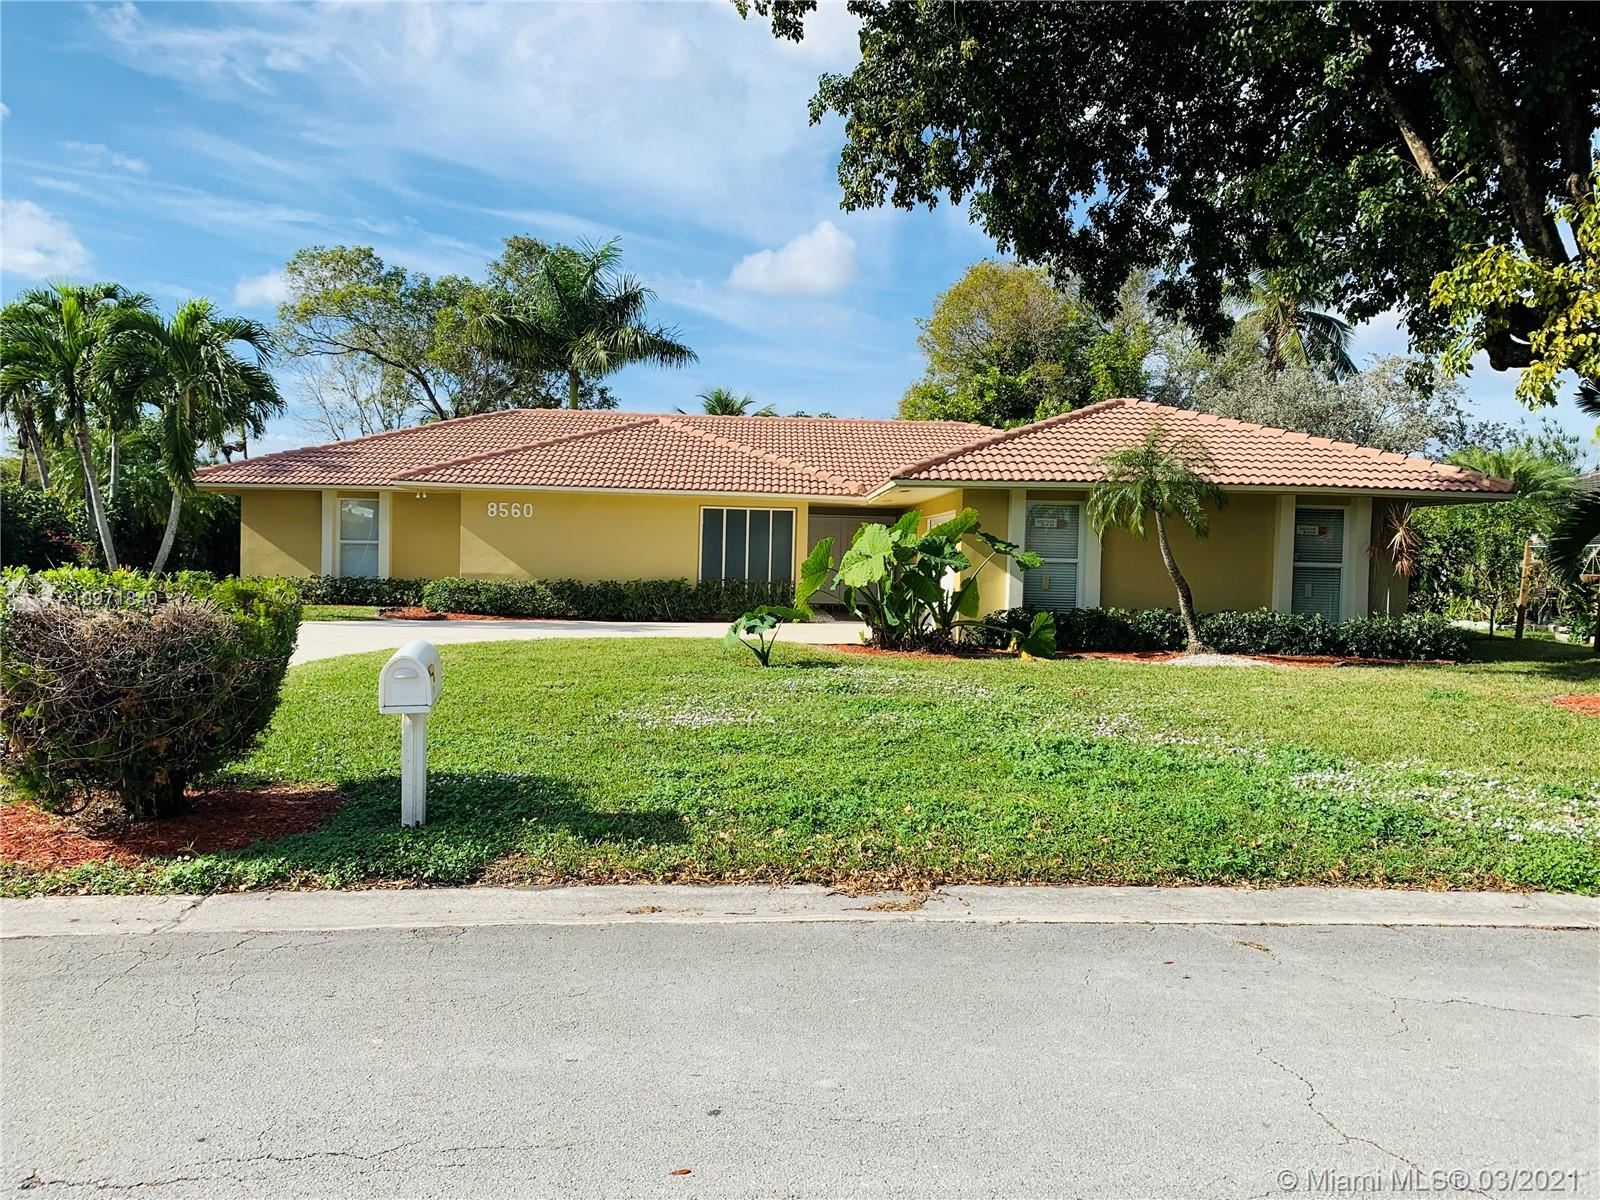 8560 NW 27th Dr, Coral Springs, FL 33065 - #: A10971840